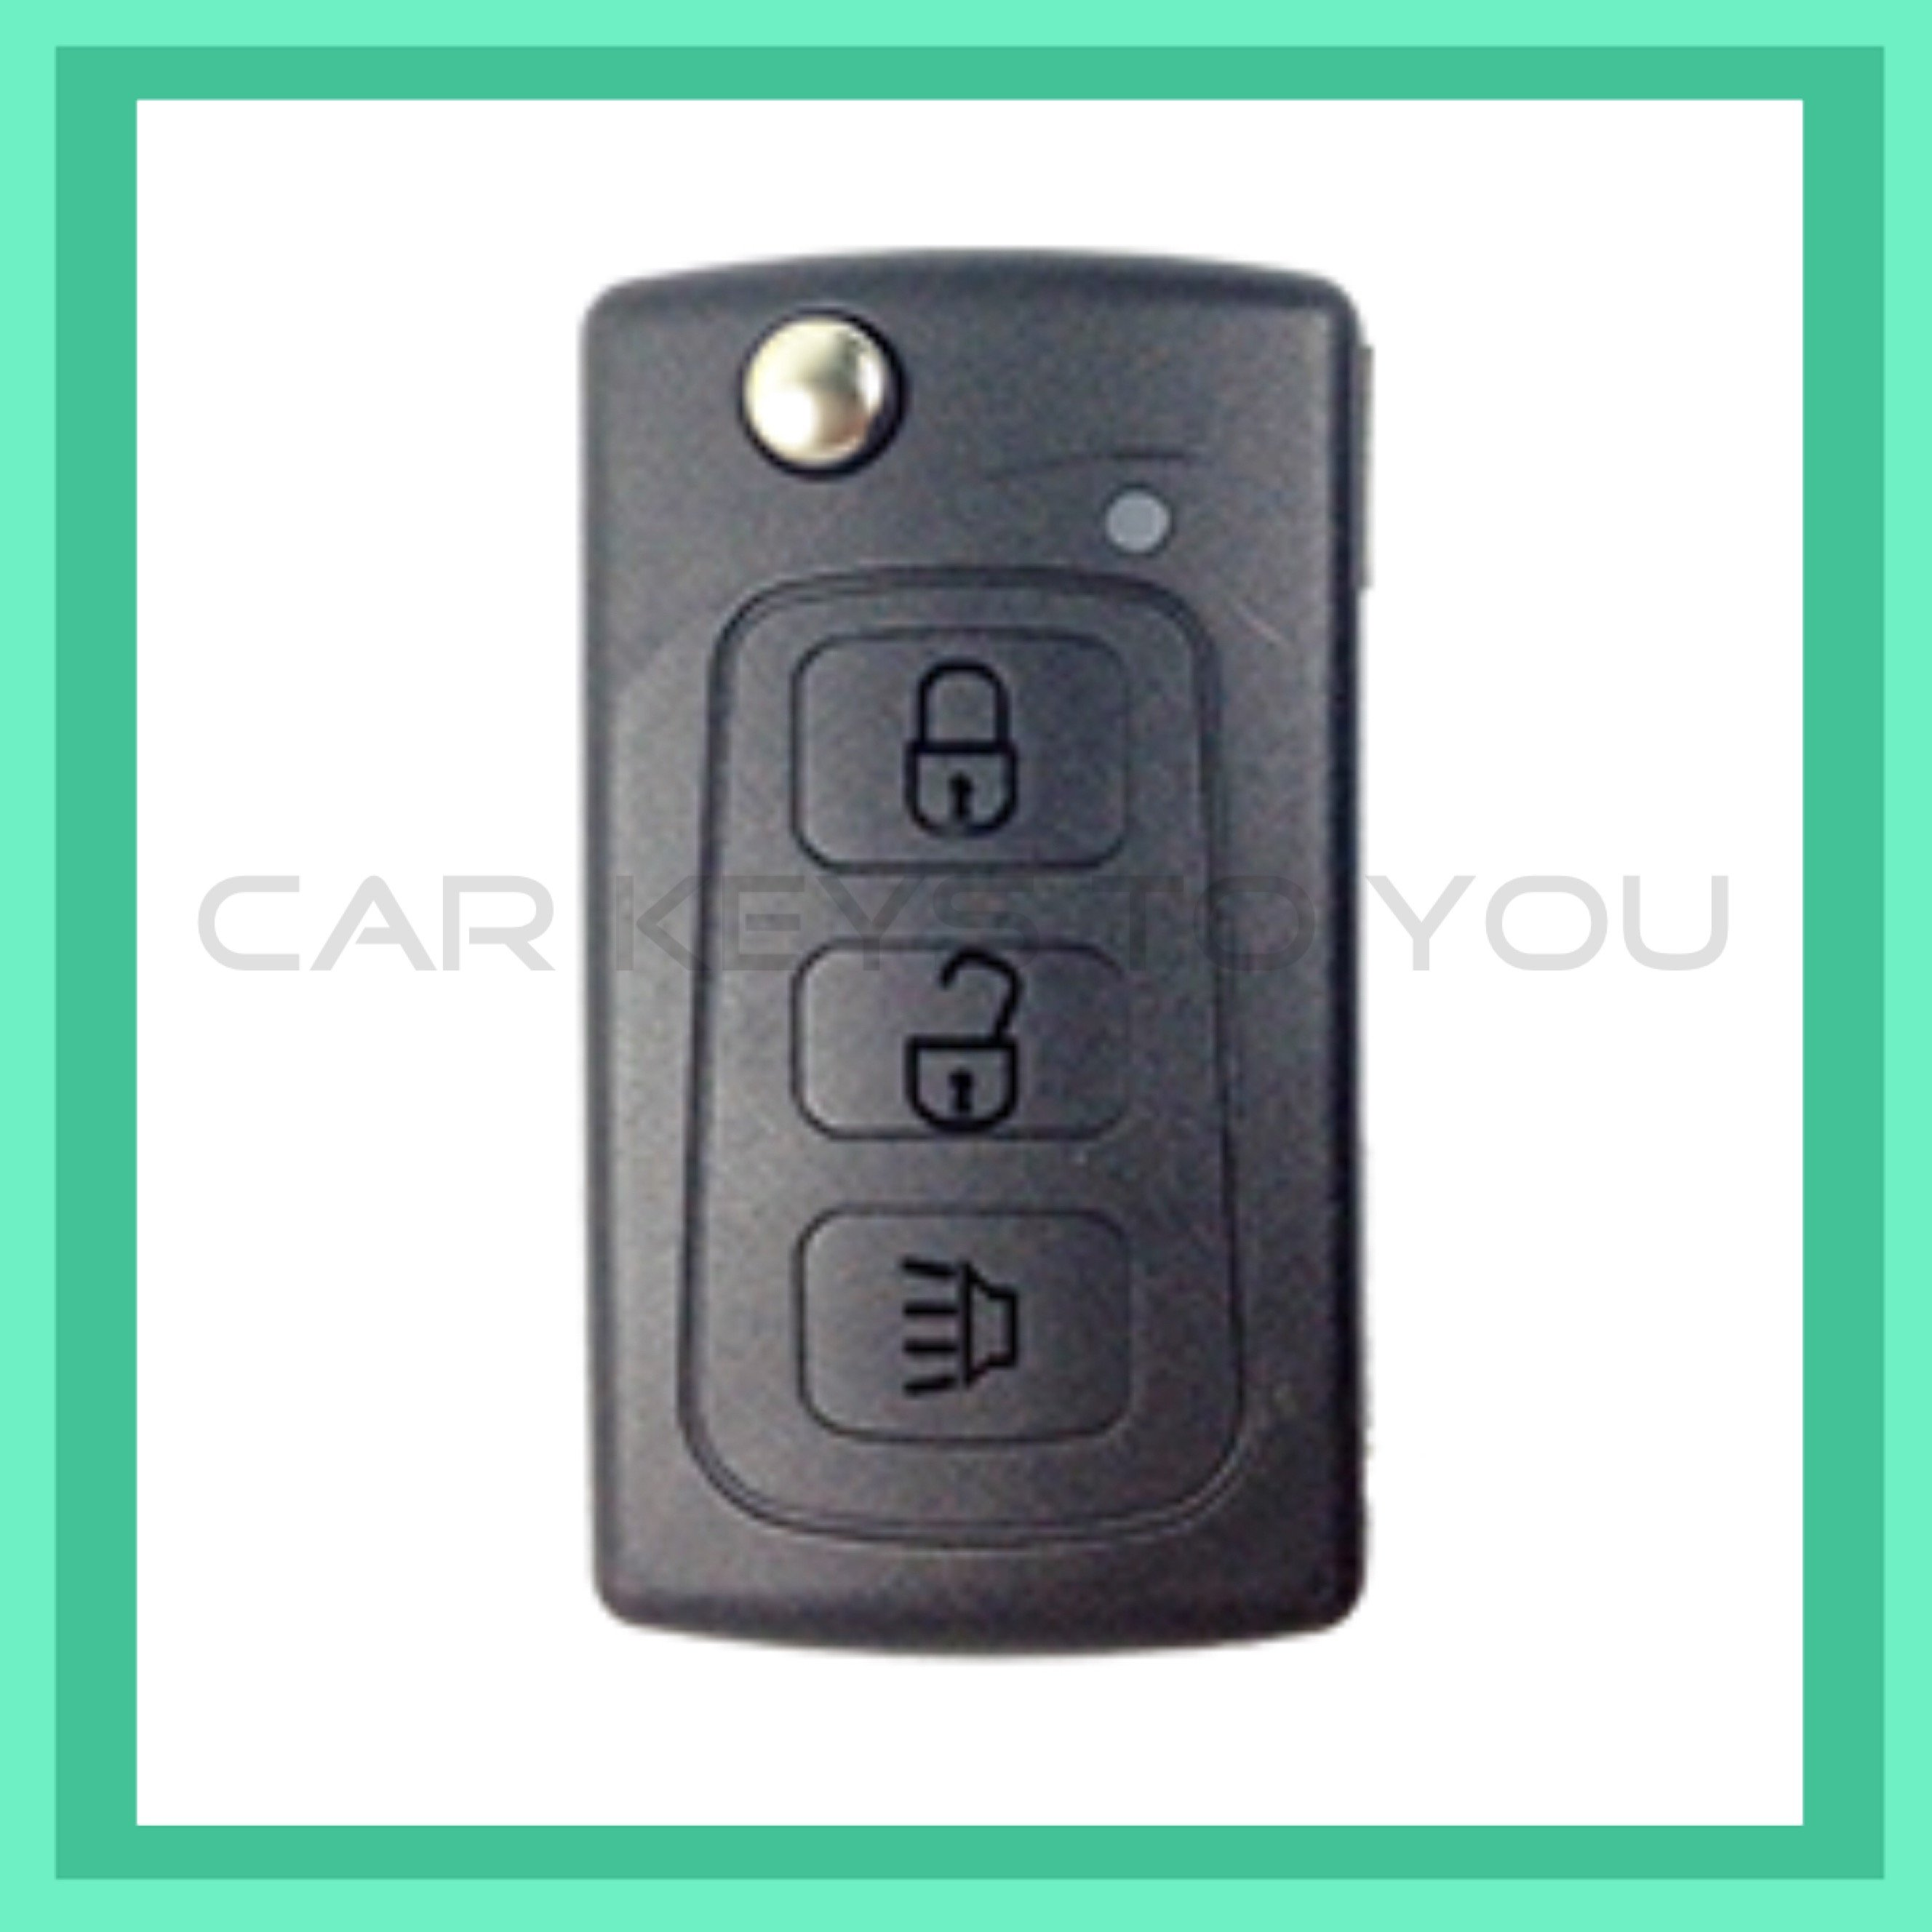 Great Wall Car Key and Remote, Suit X240 K2